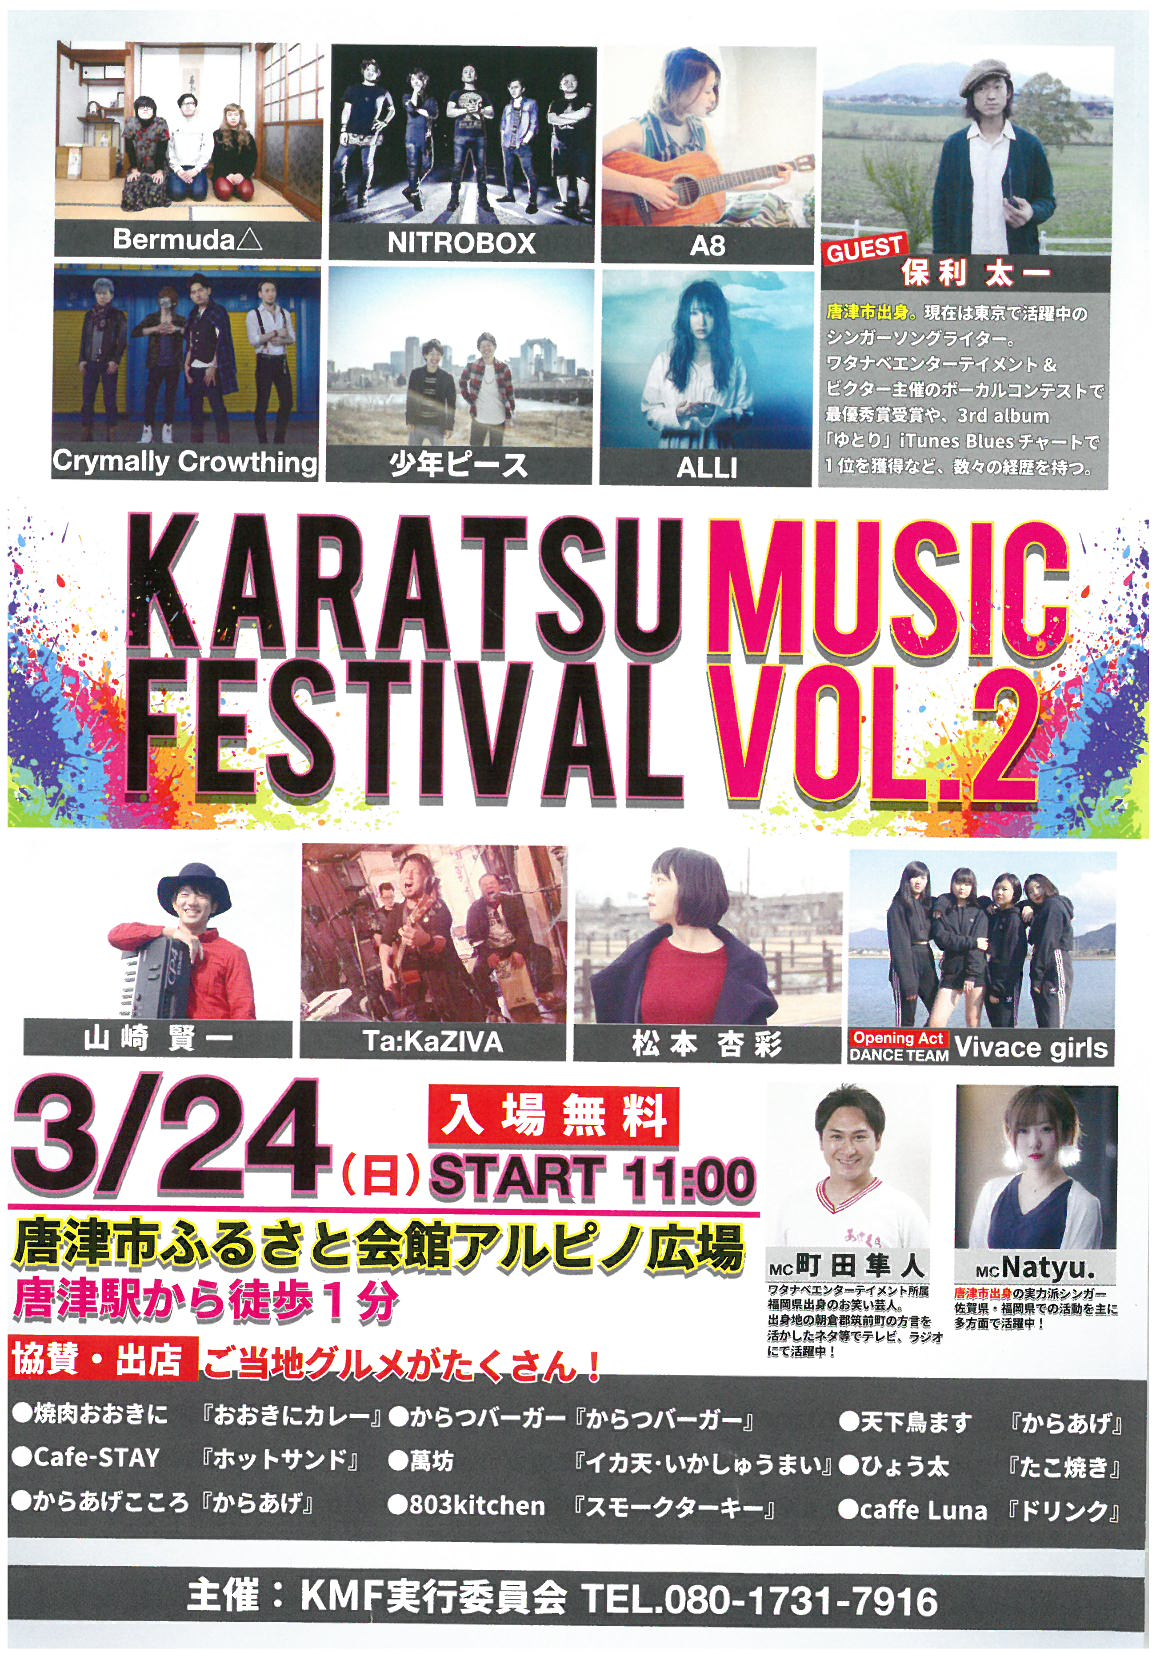 3/24(日)KARATSU MUSIC FESTIVAL VOL.2